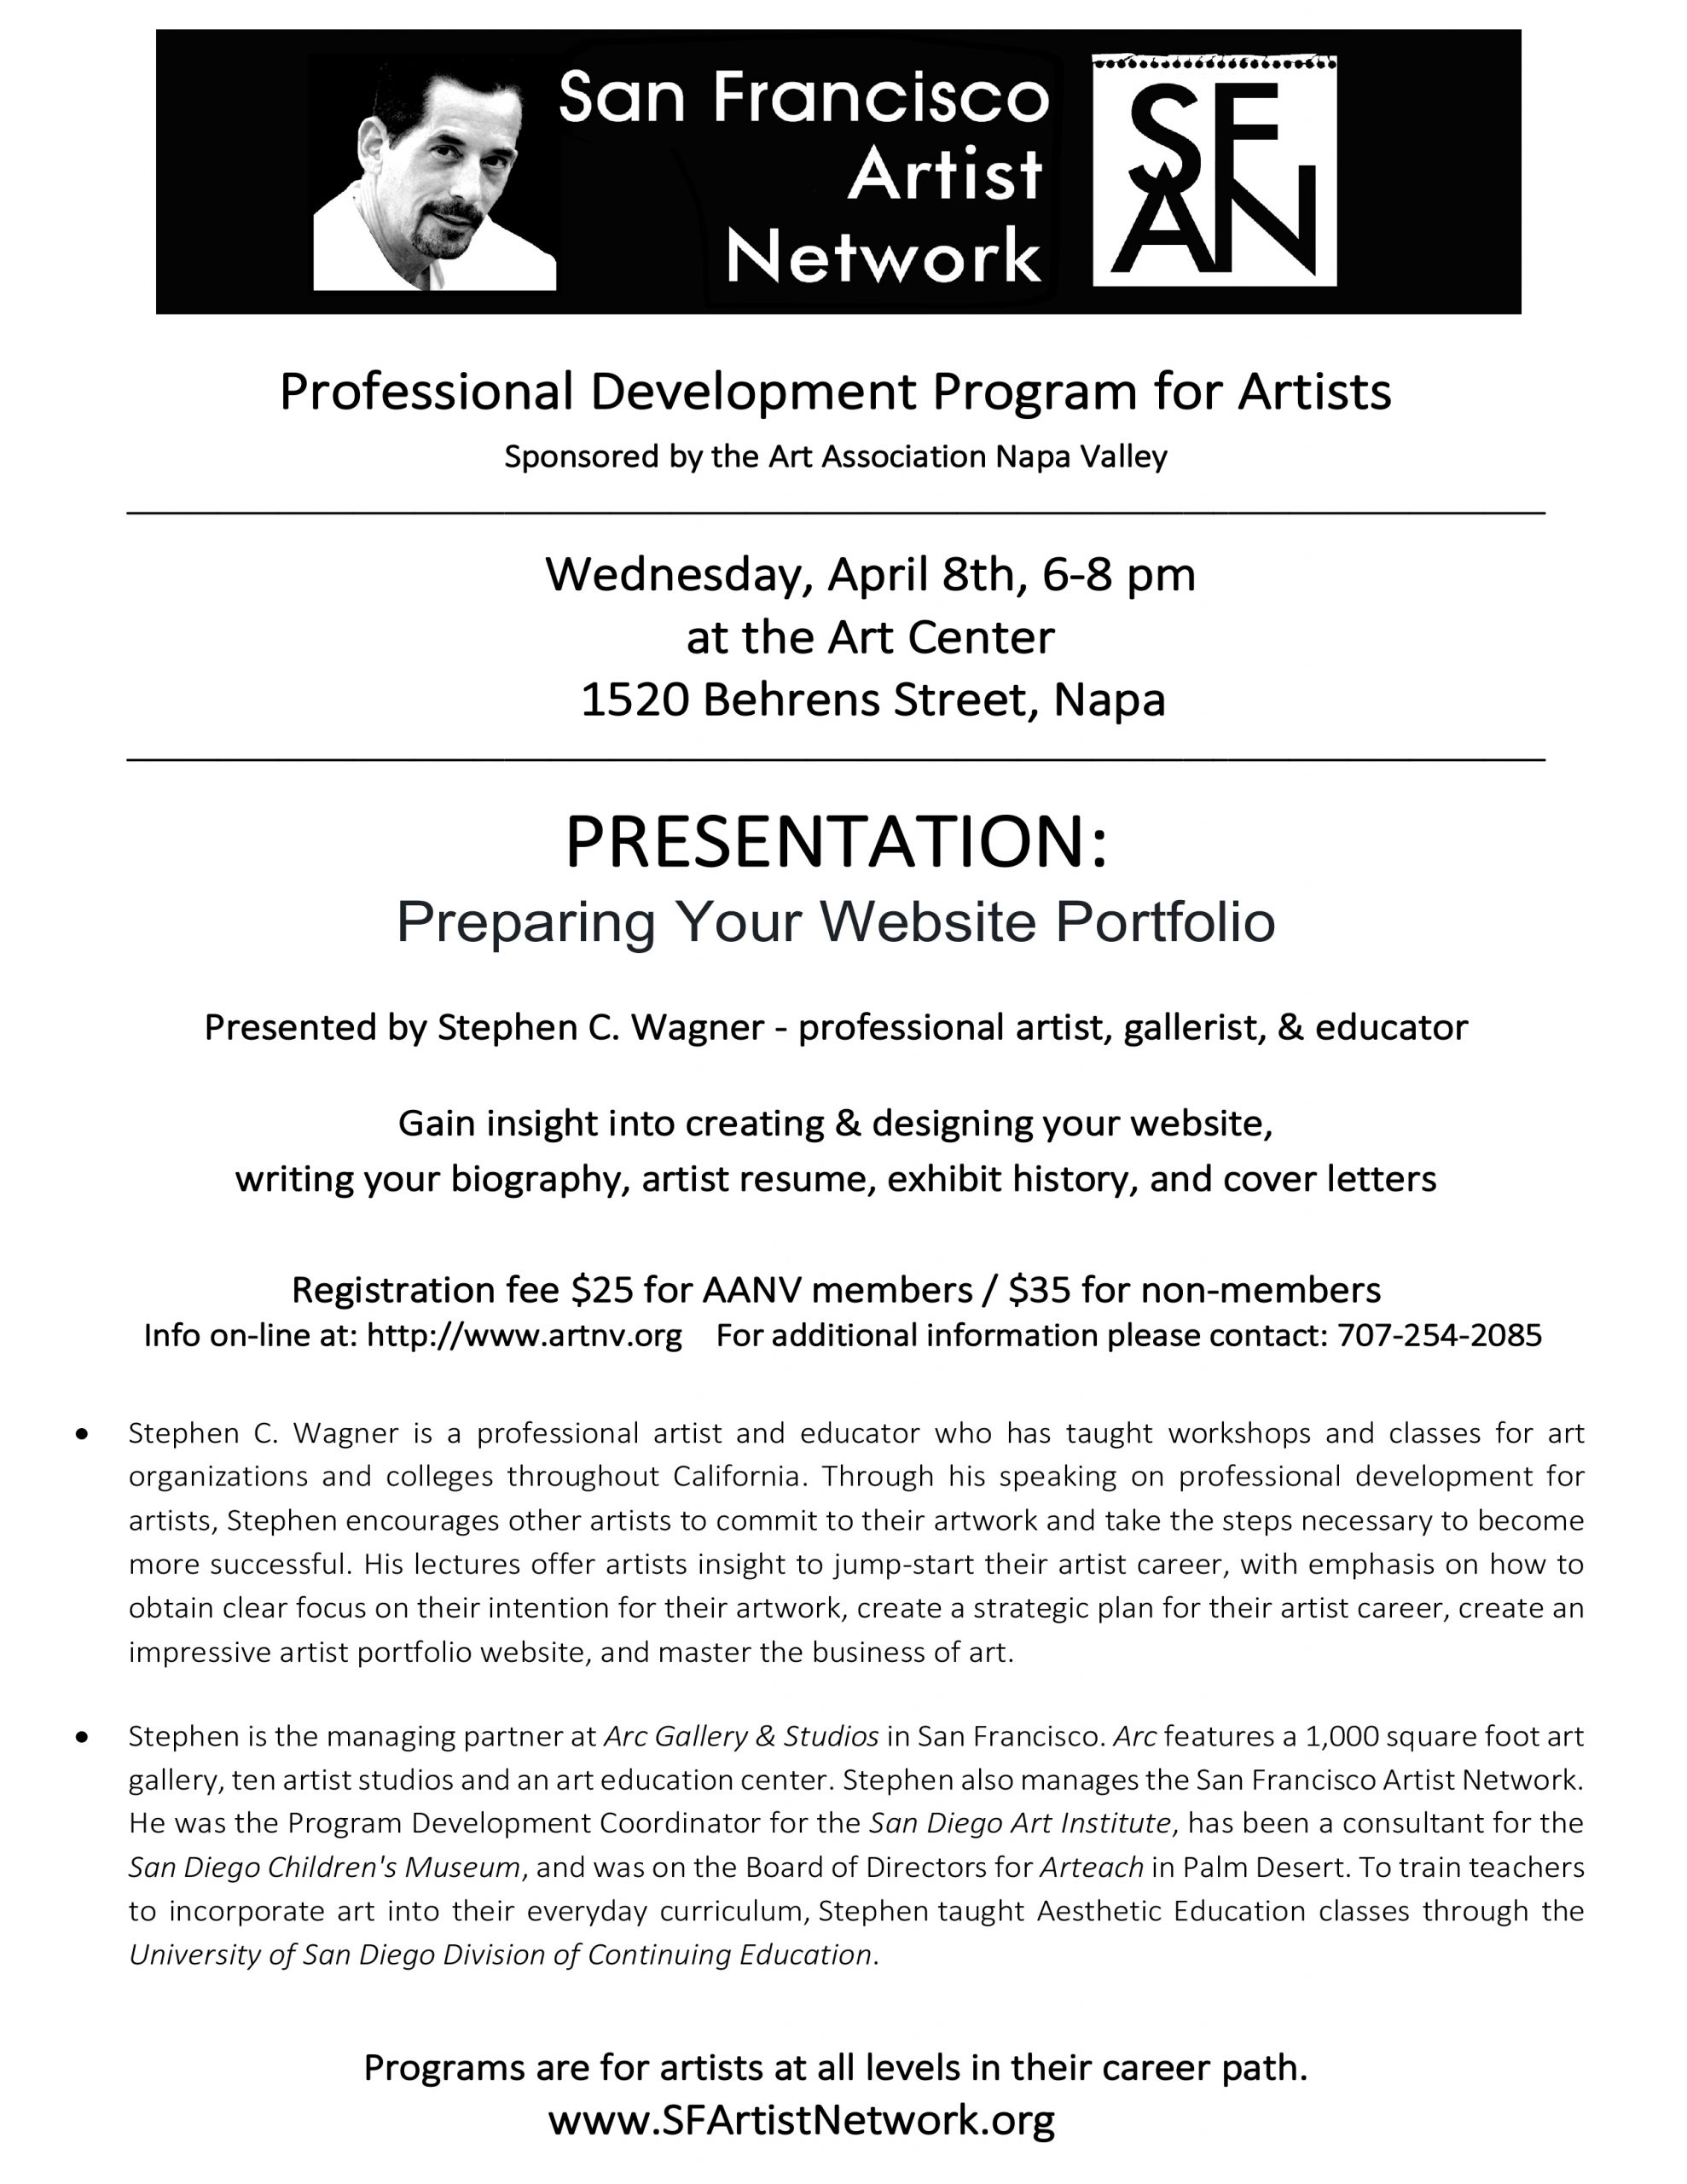 POSTPONED – Professional Development Program for Artists – Preparing Your Website Portfolio